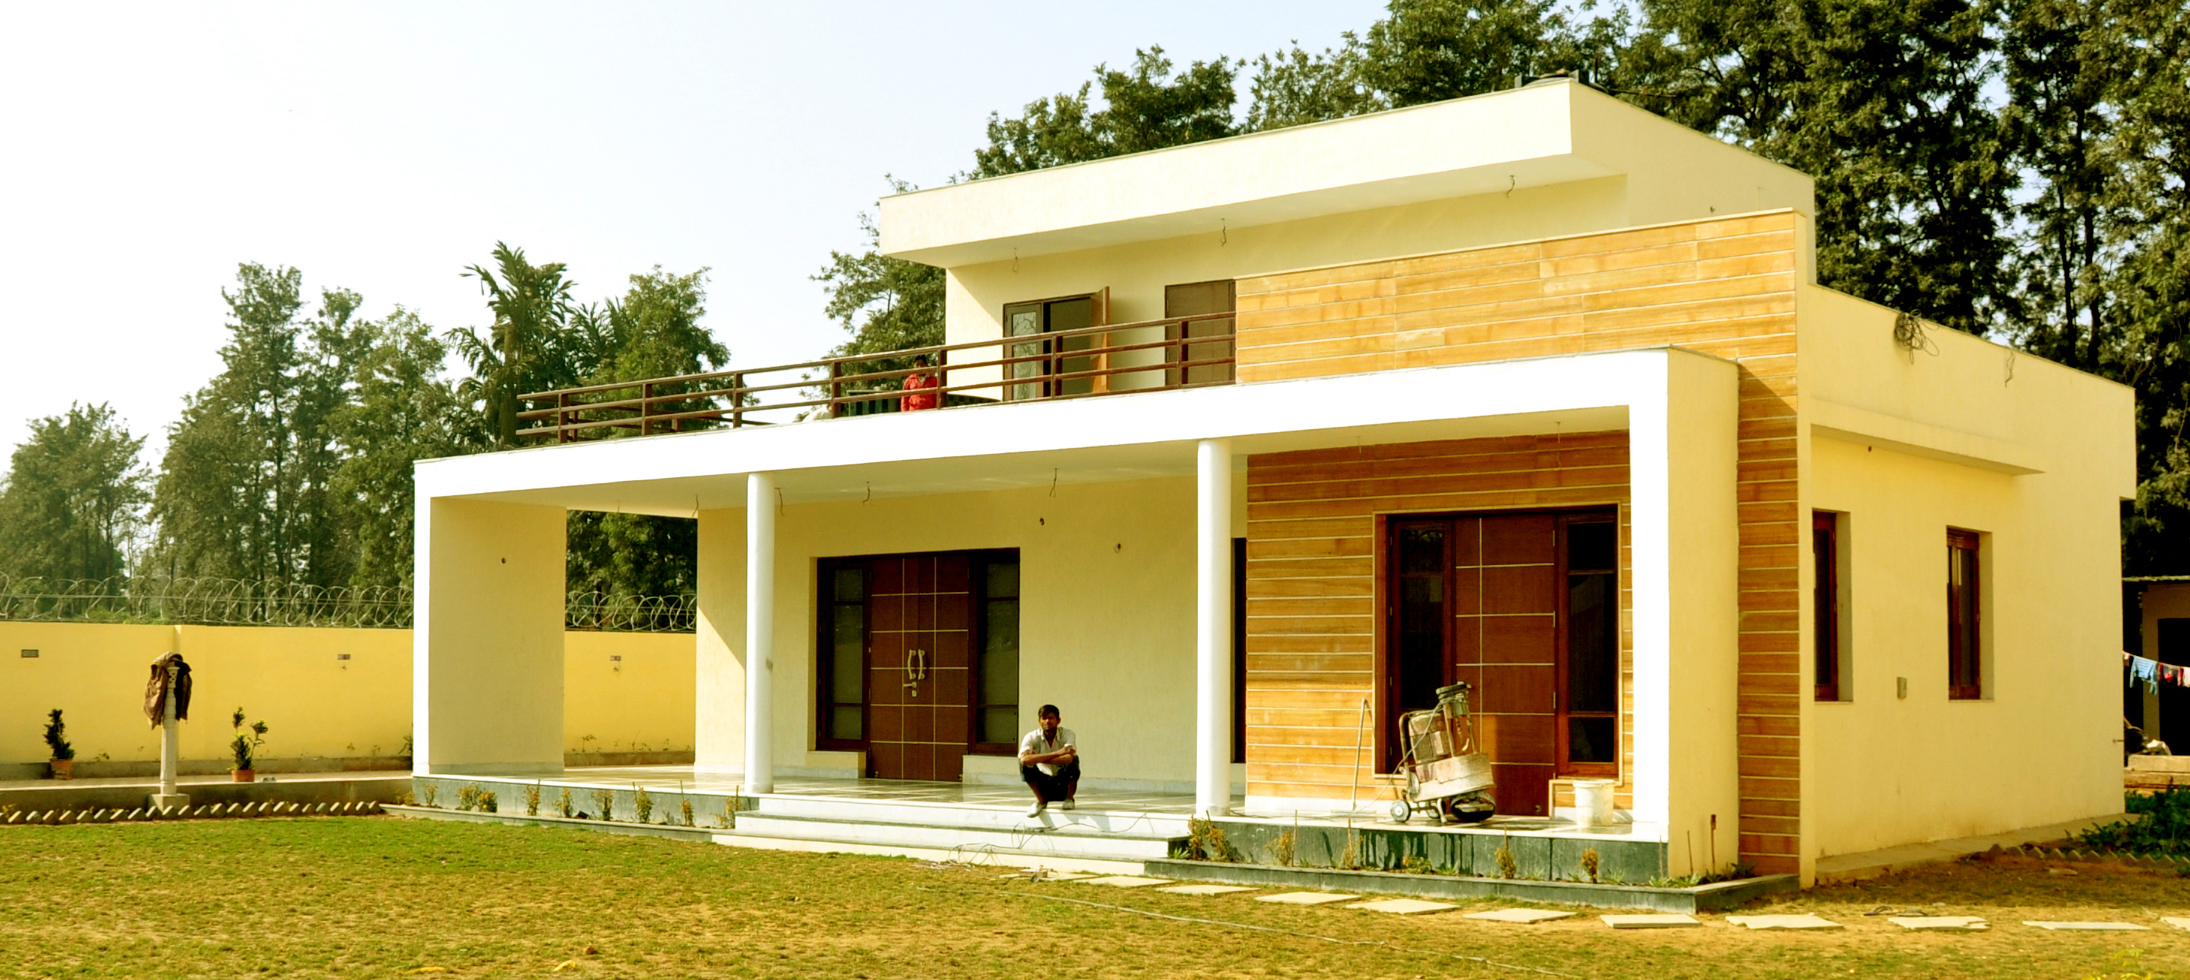 Chattarpur farm house south delhi architect magazine for Indian small house photos